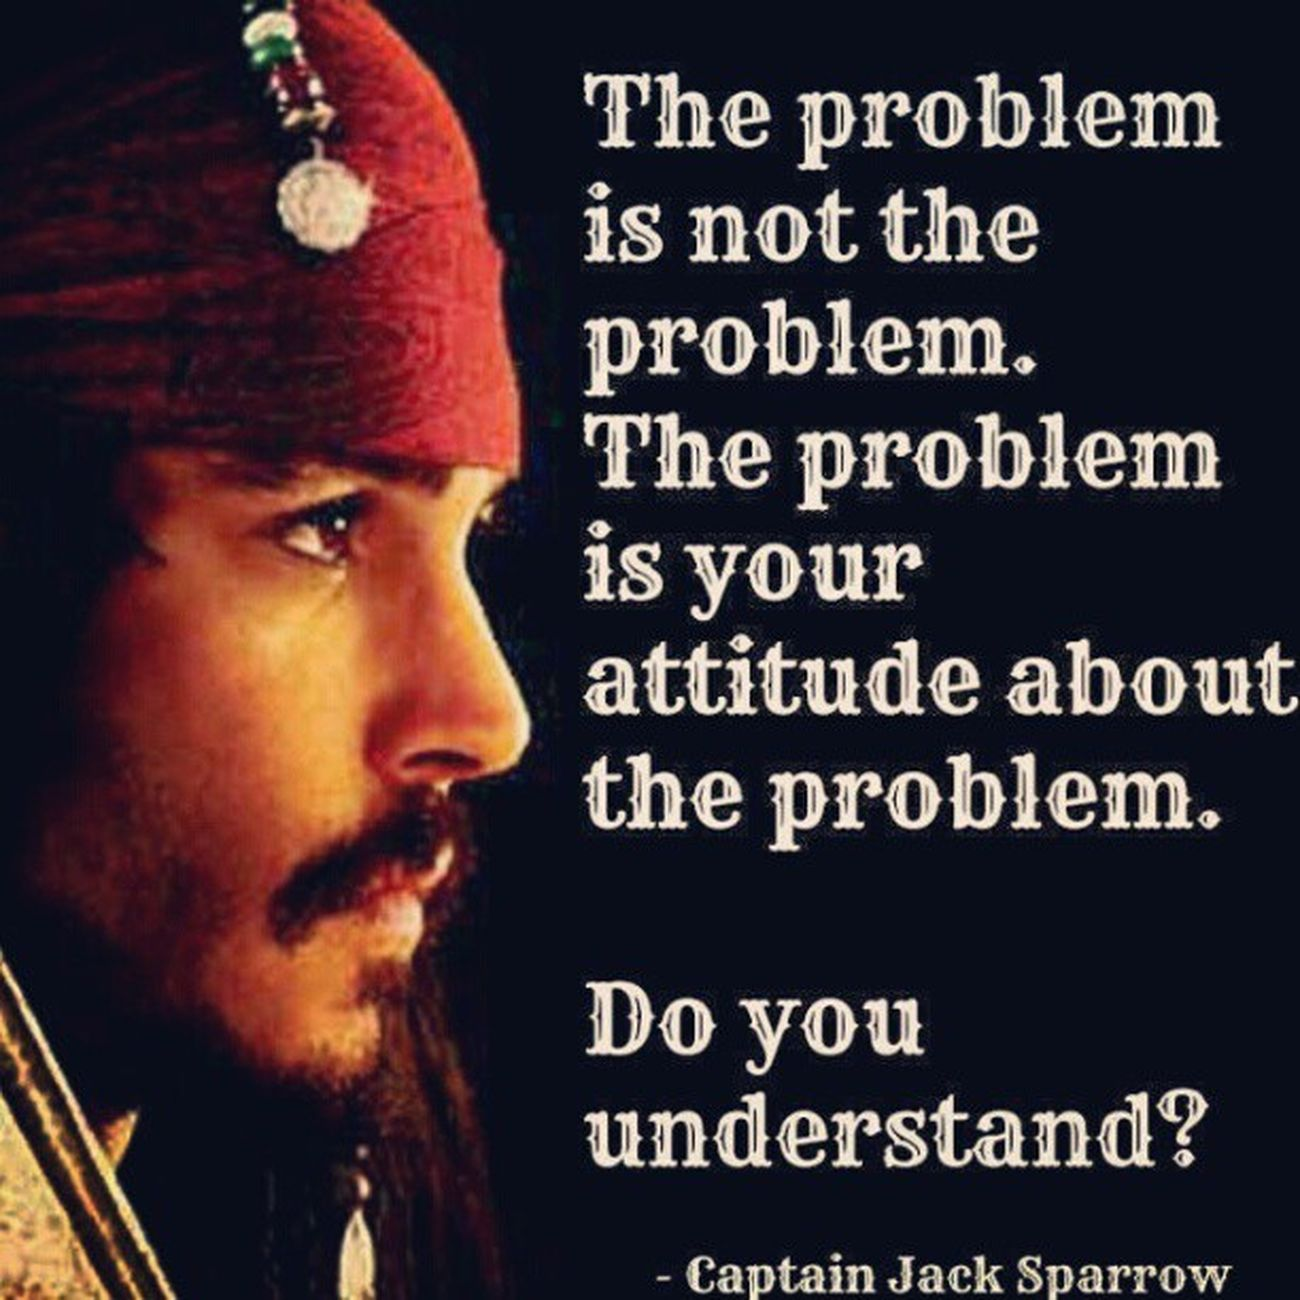 JackSparrow Piratesofthecarribean Epic Classic